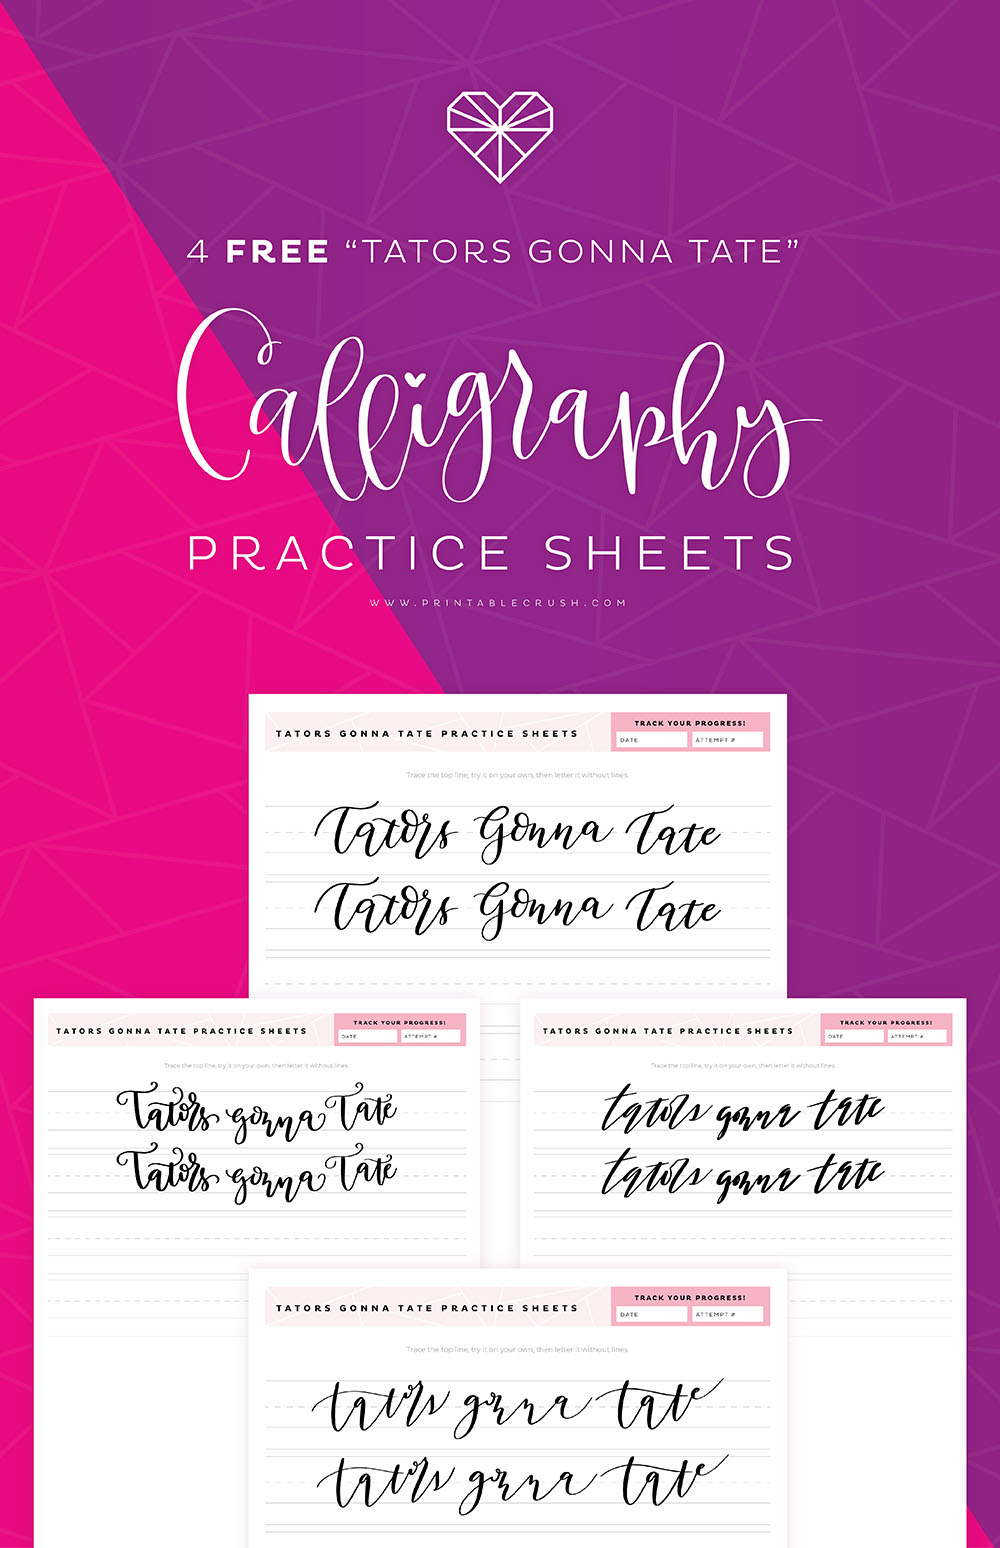 These funny Tators Gonna Tate Calligraphy Practice Sheets will help you master calligraphy! Practicing daily is THE BEST way to get better.